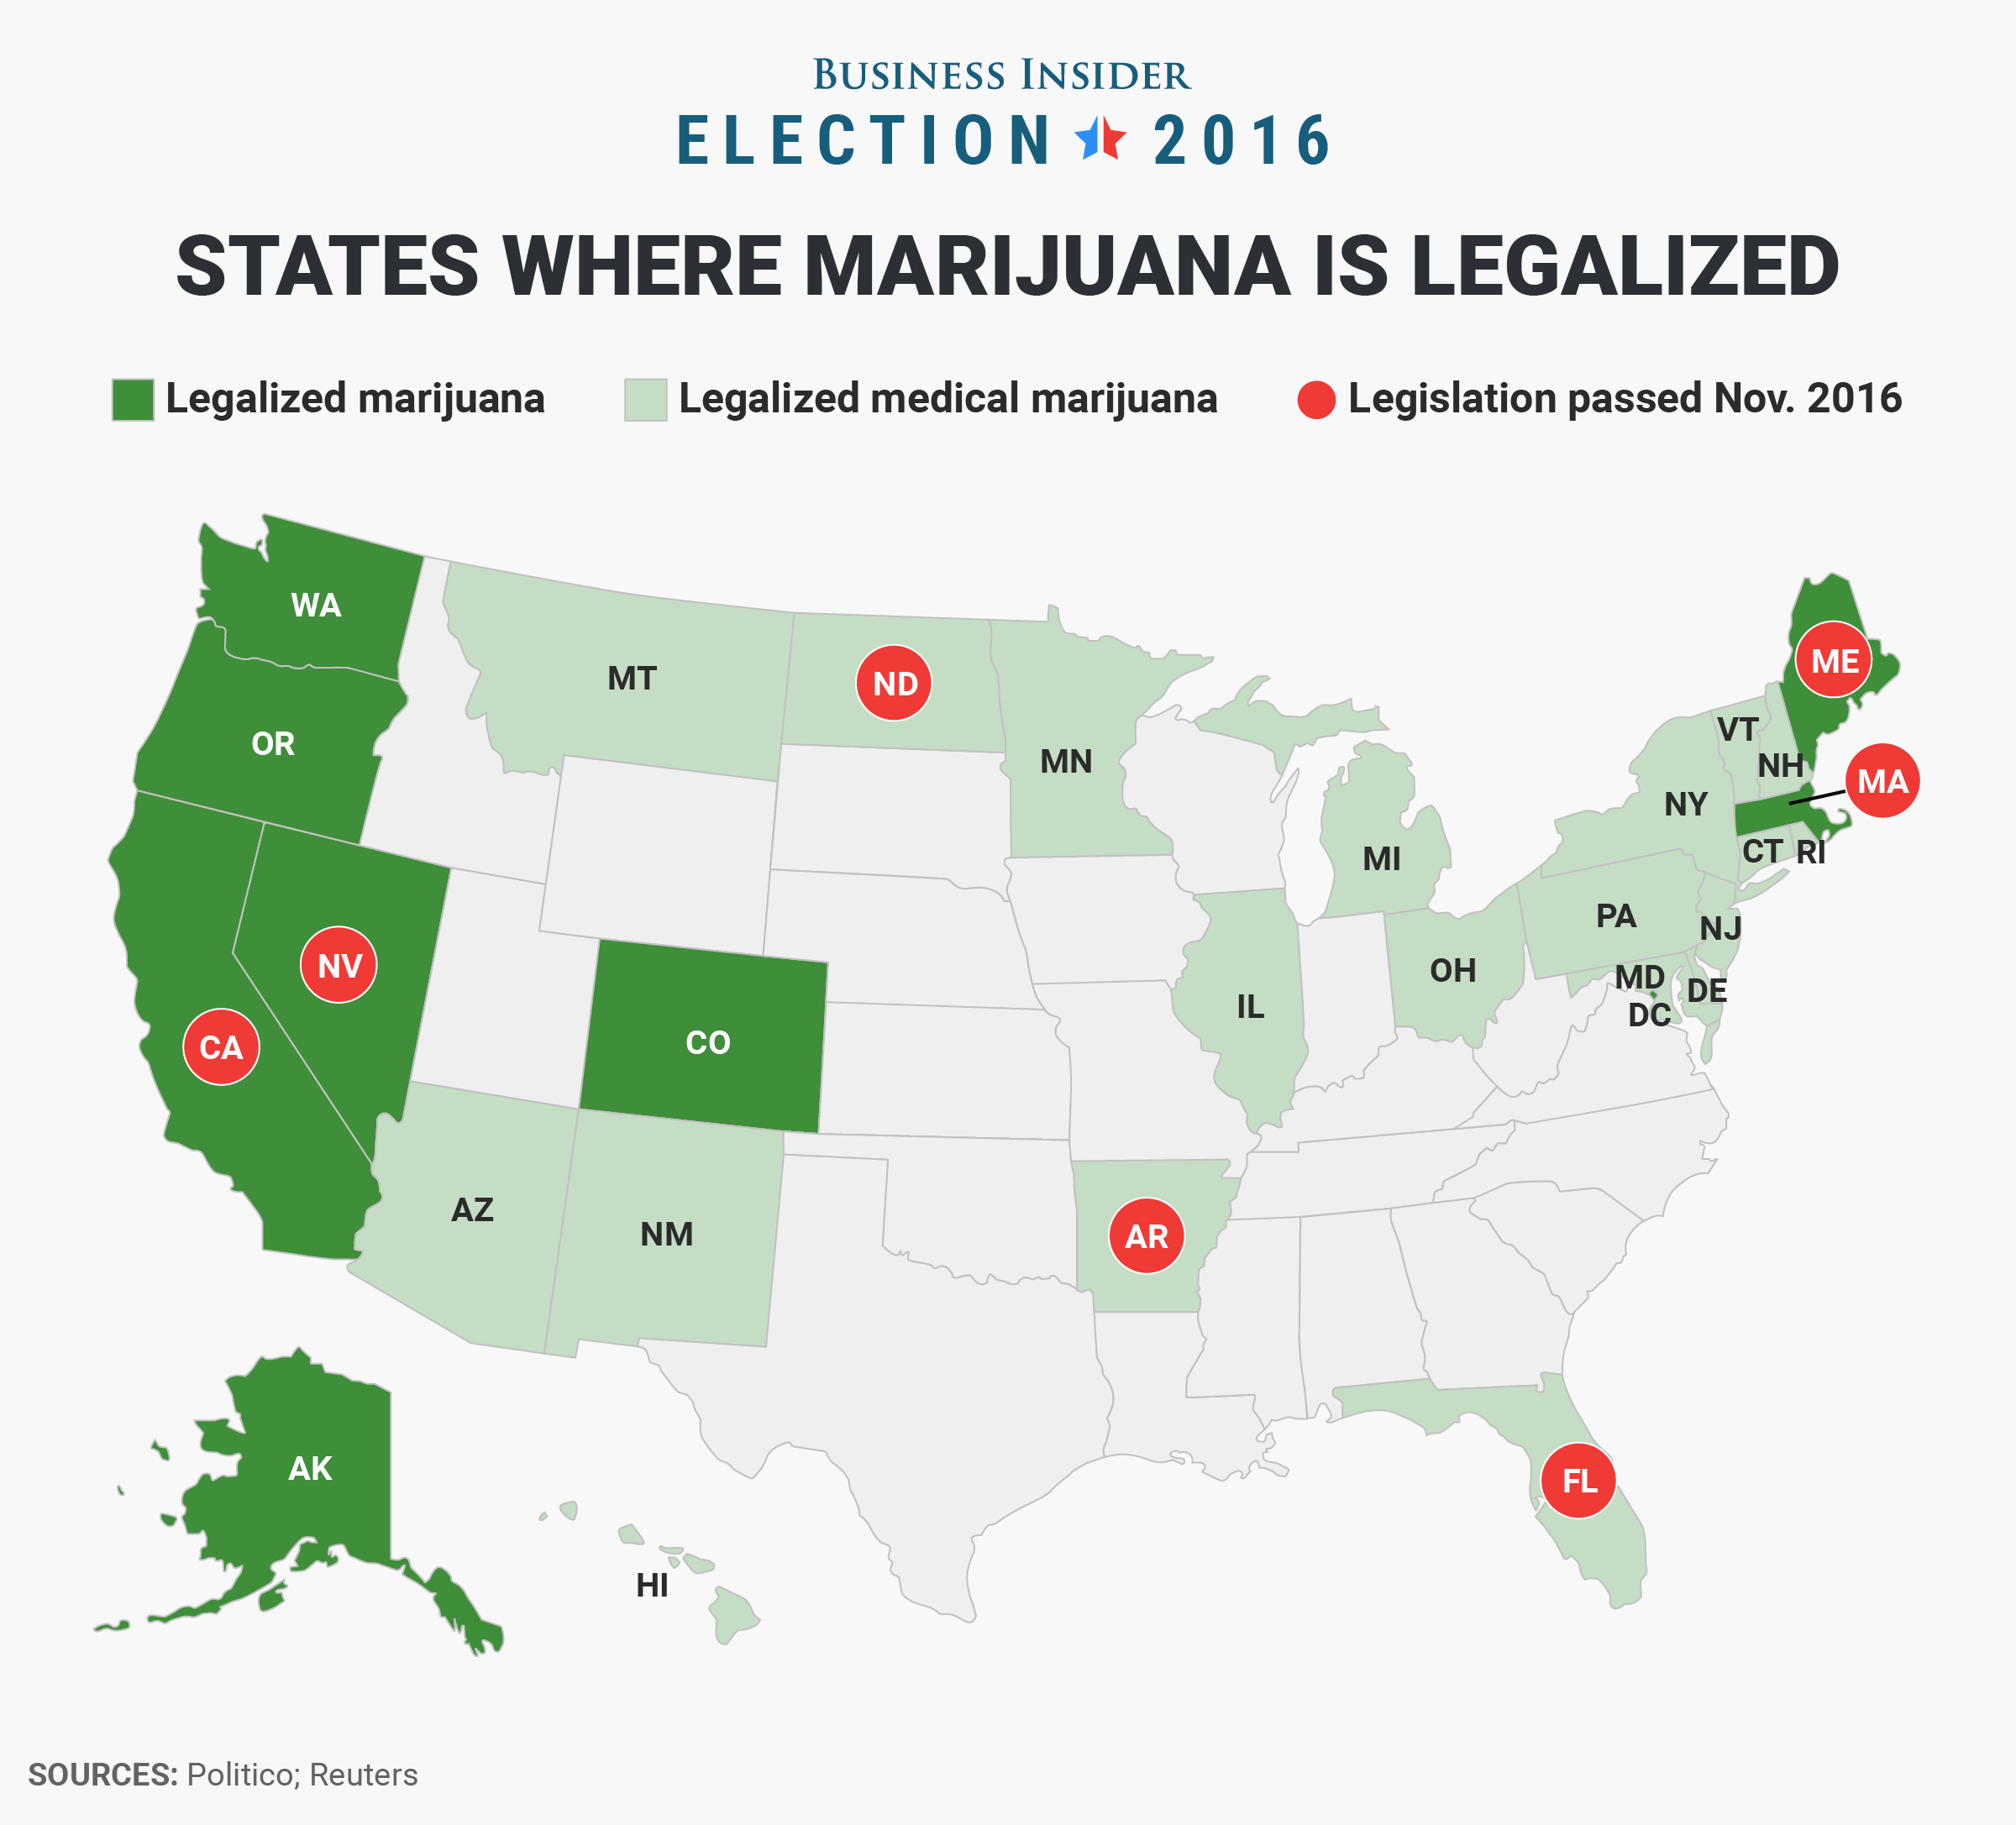 map_legal_mj_mmj.png